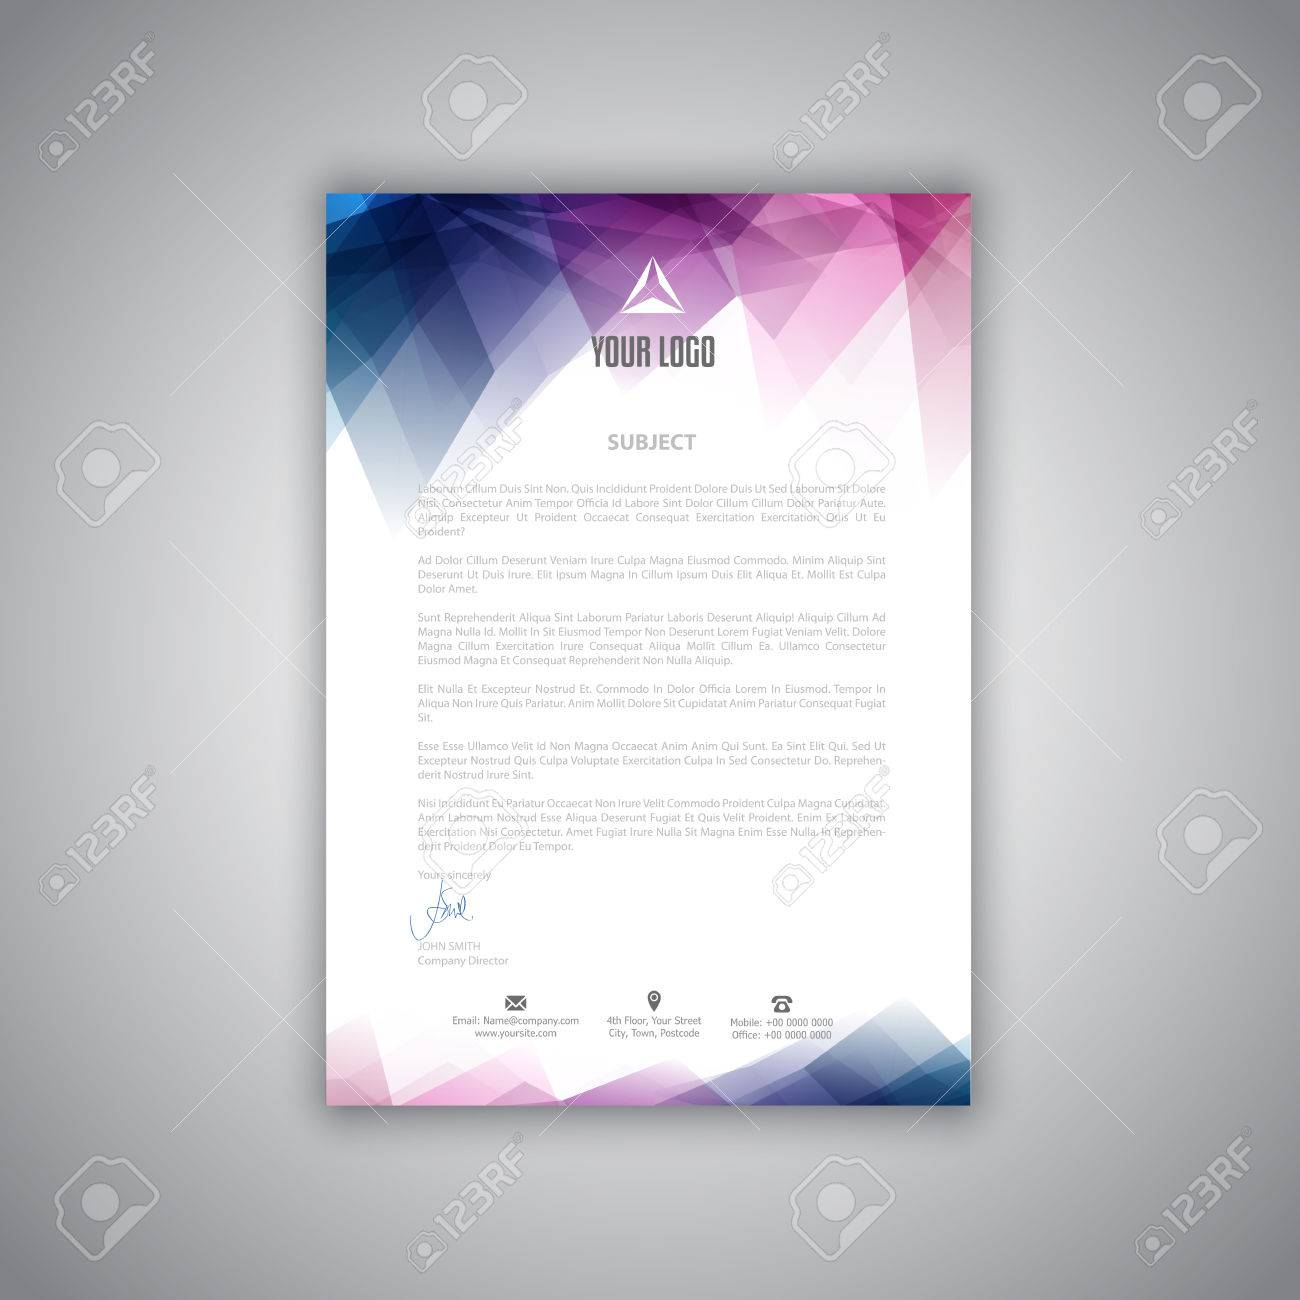 layout design for a business letterhead stock photo 61088037 - Business Letter Head